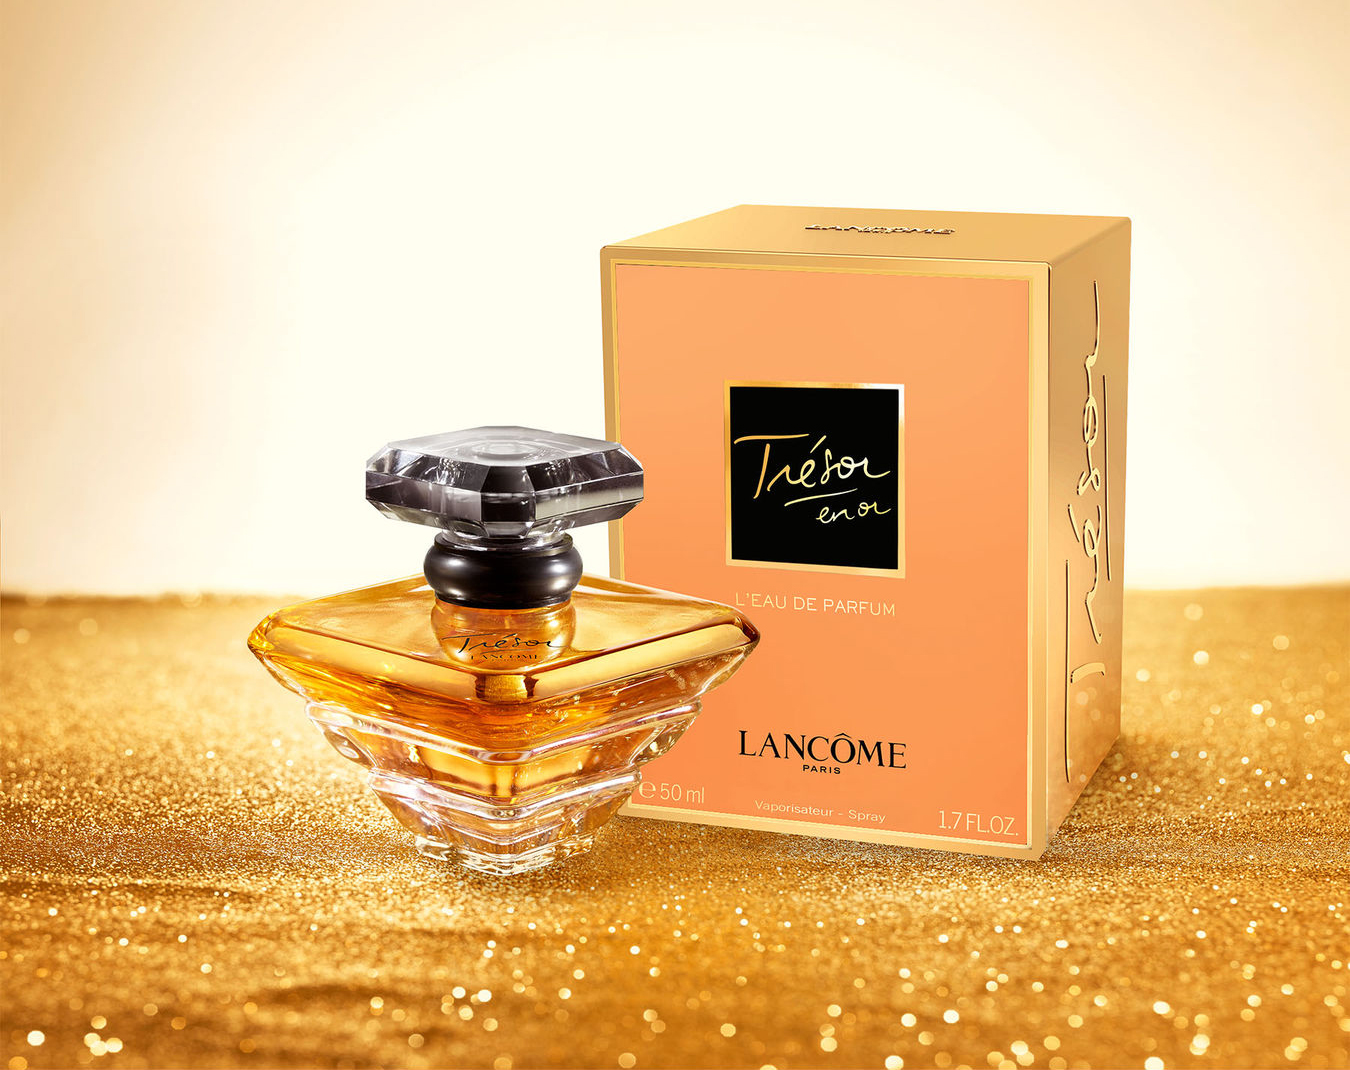 Lancôme-Trésor-en-Or-Flacon-and-Box-Gold